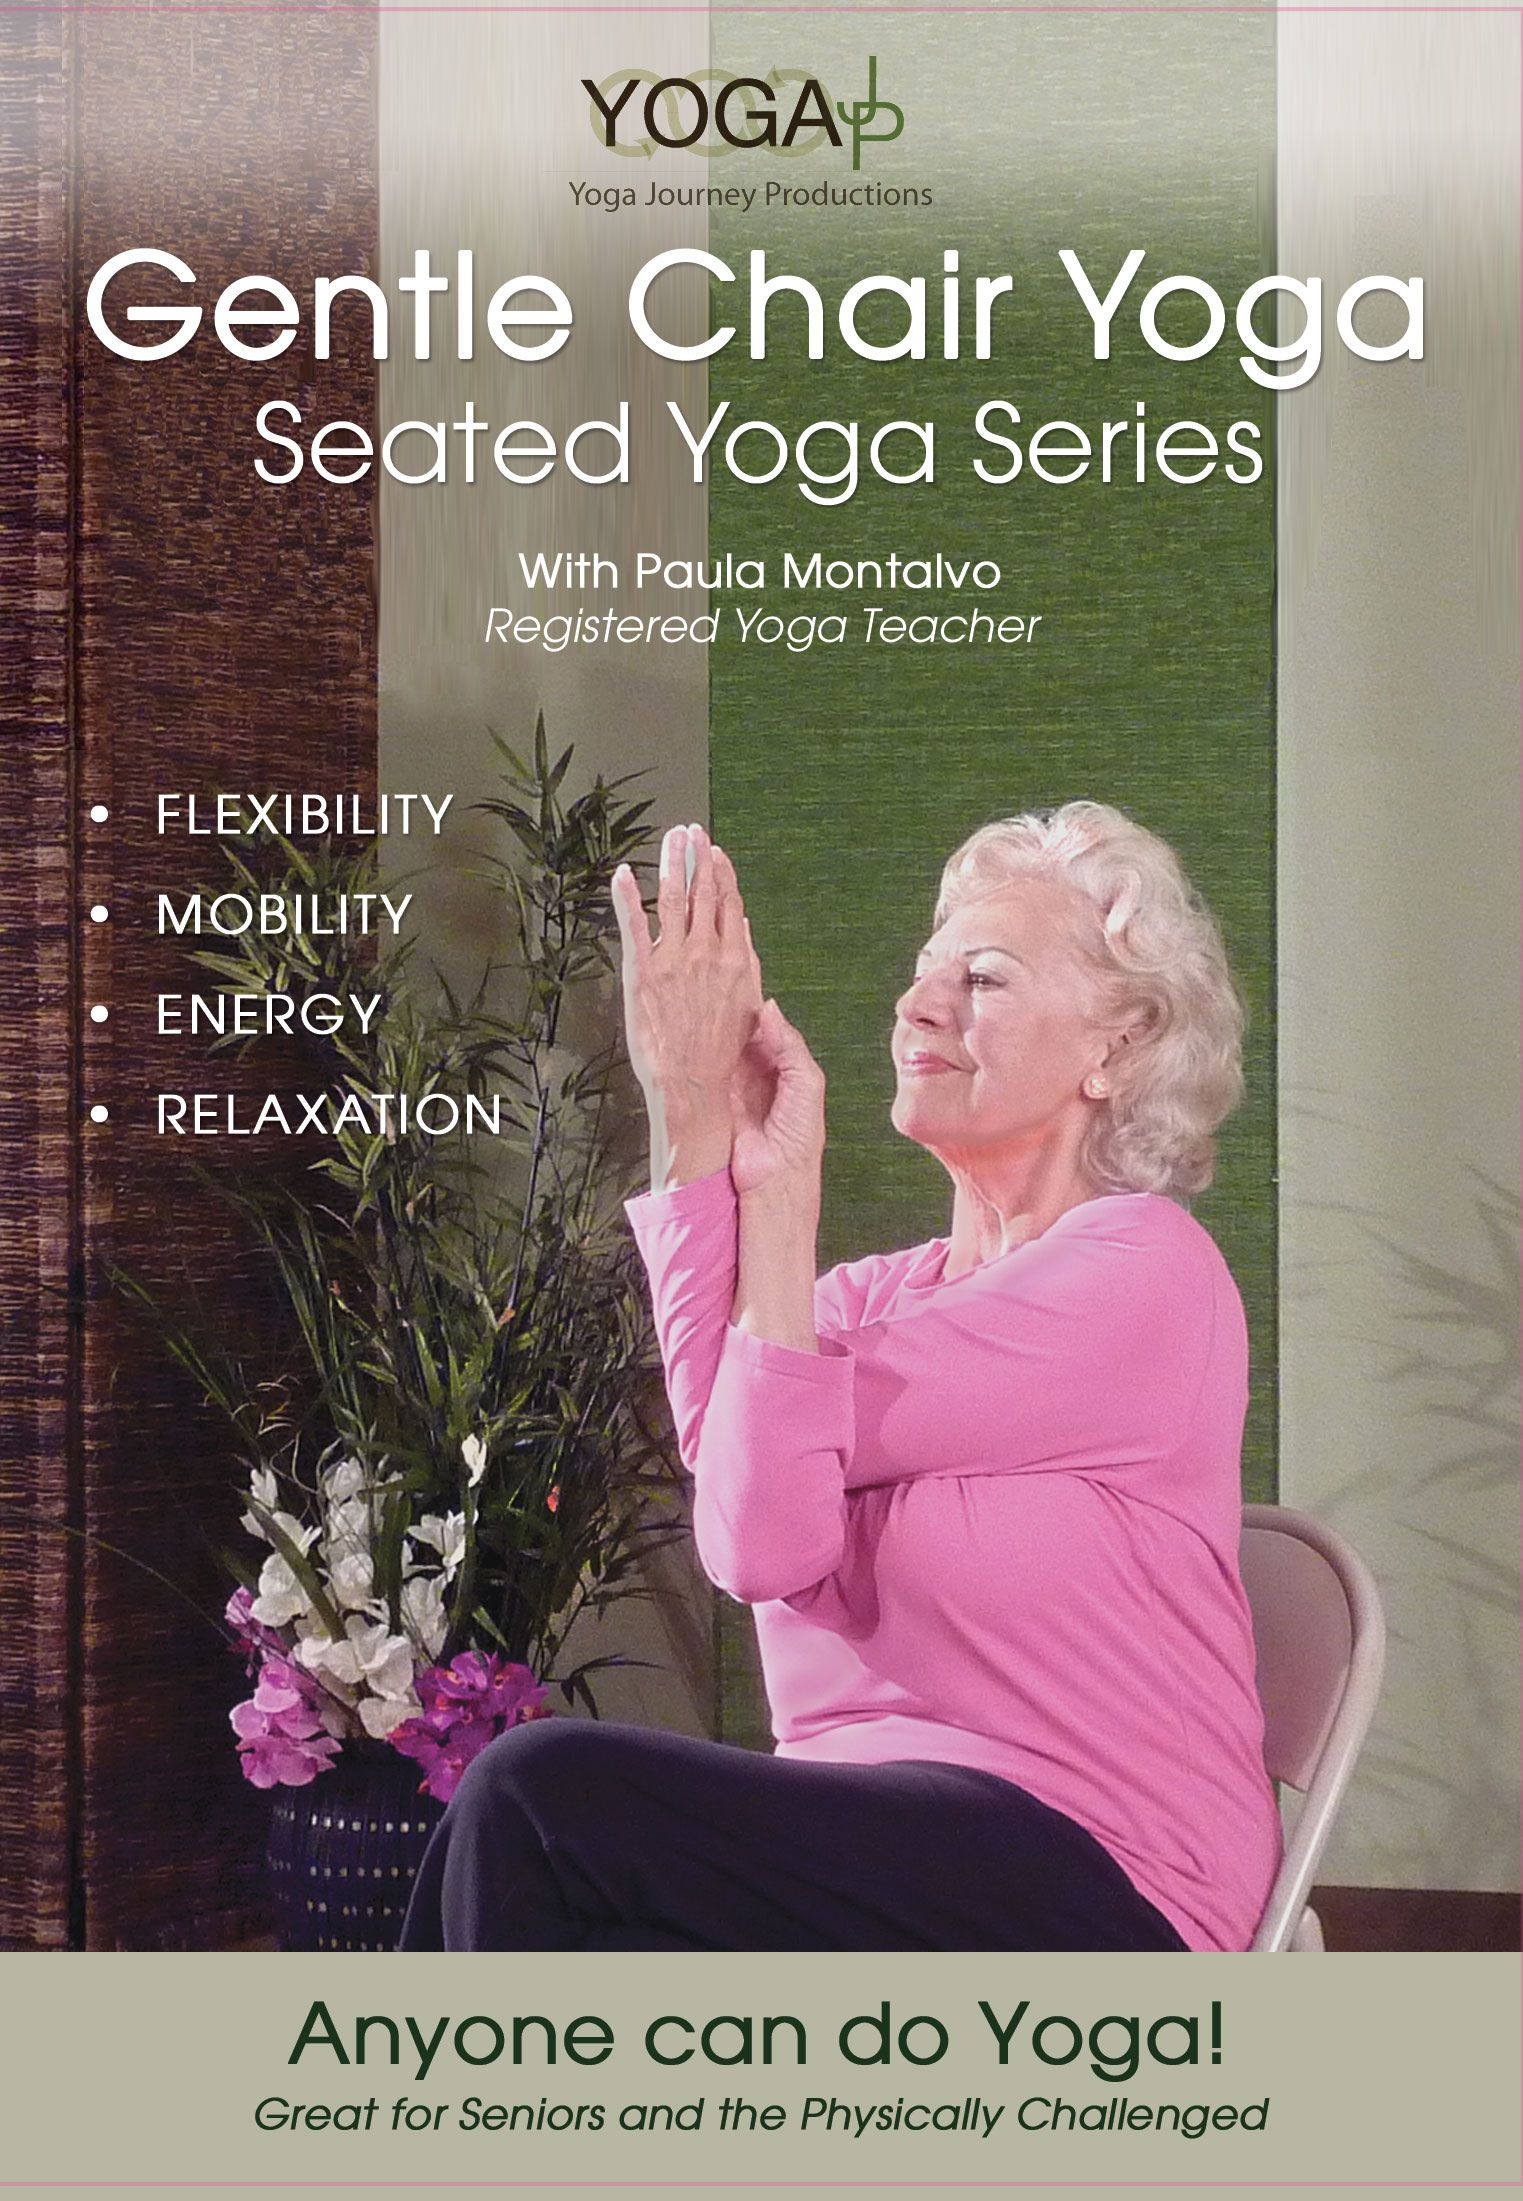 Gentle Chair Yoga  Seated Series DVD  Stuff  Yoga Yoga